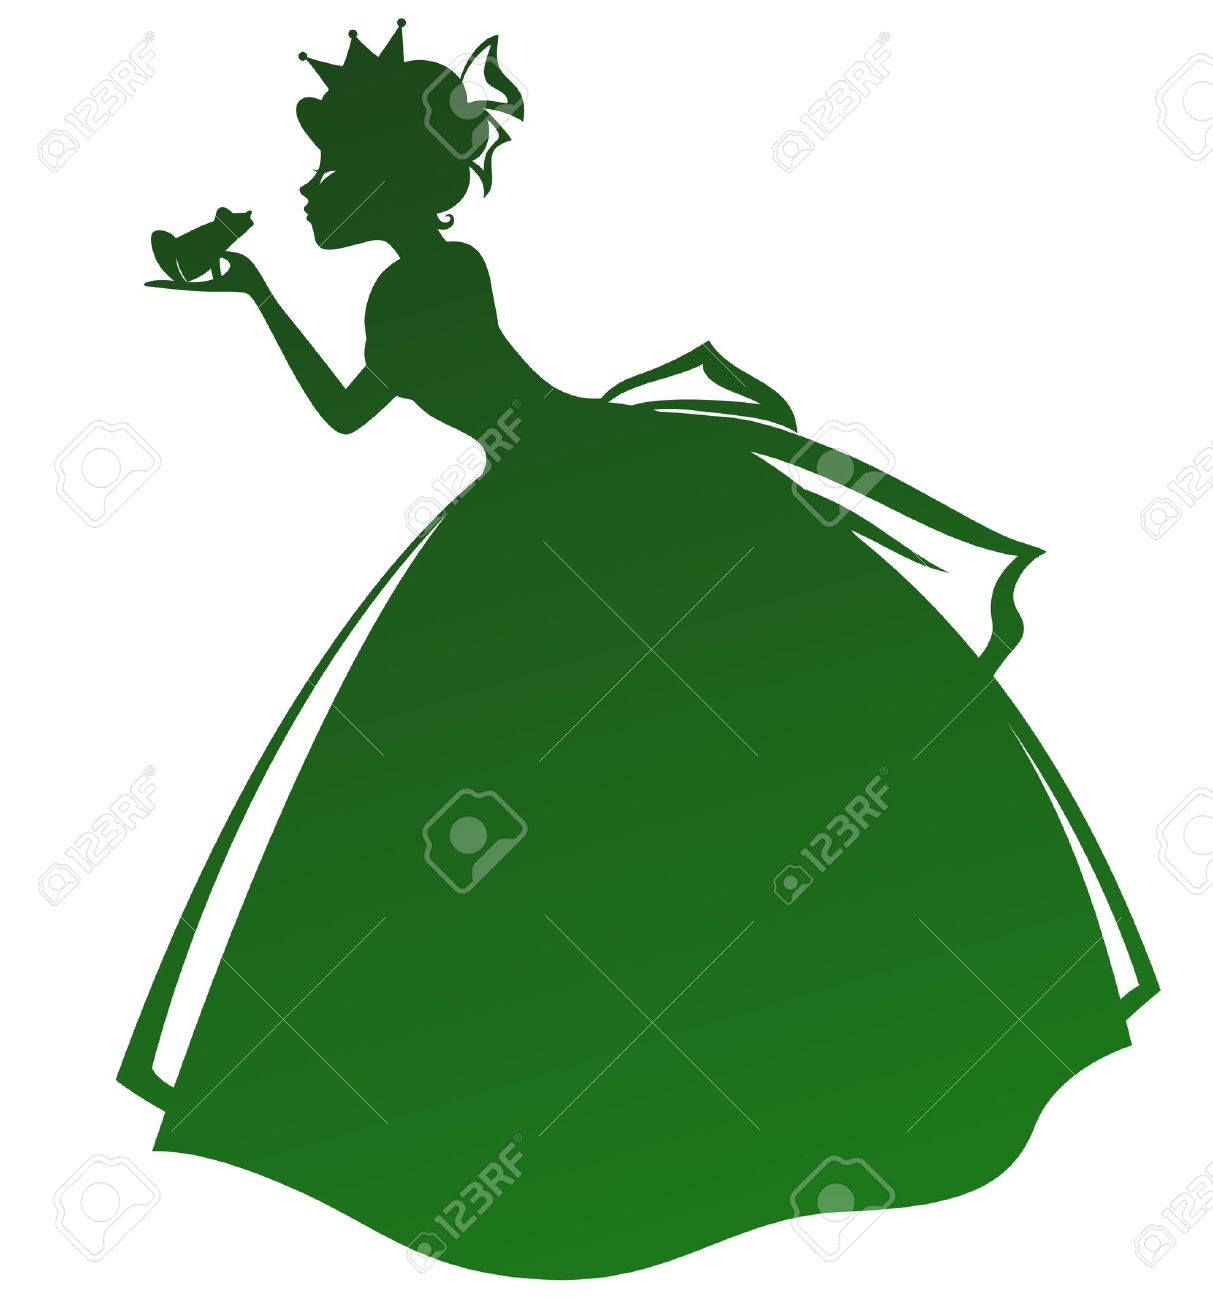 silhouette of a princess kissing a frog - 16511053